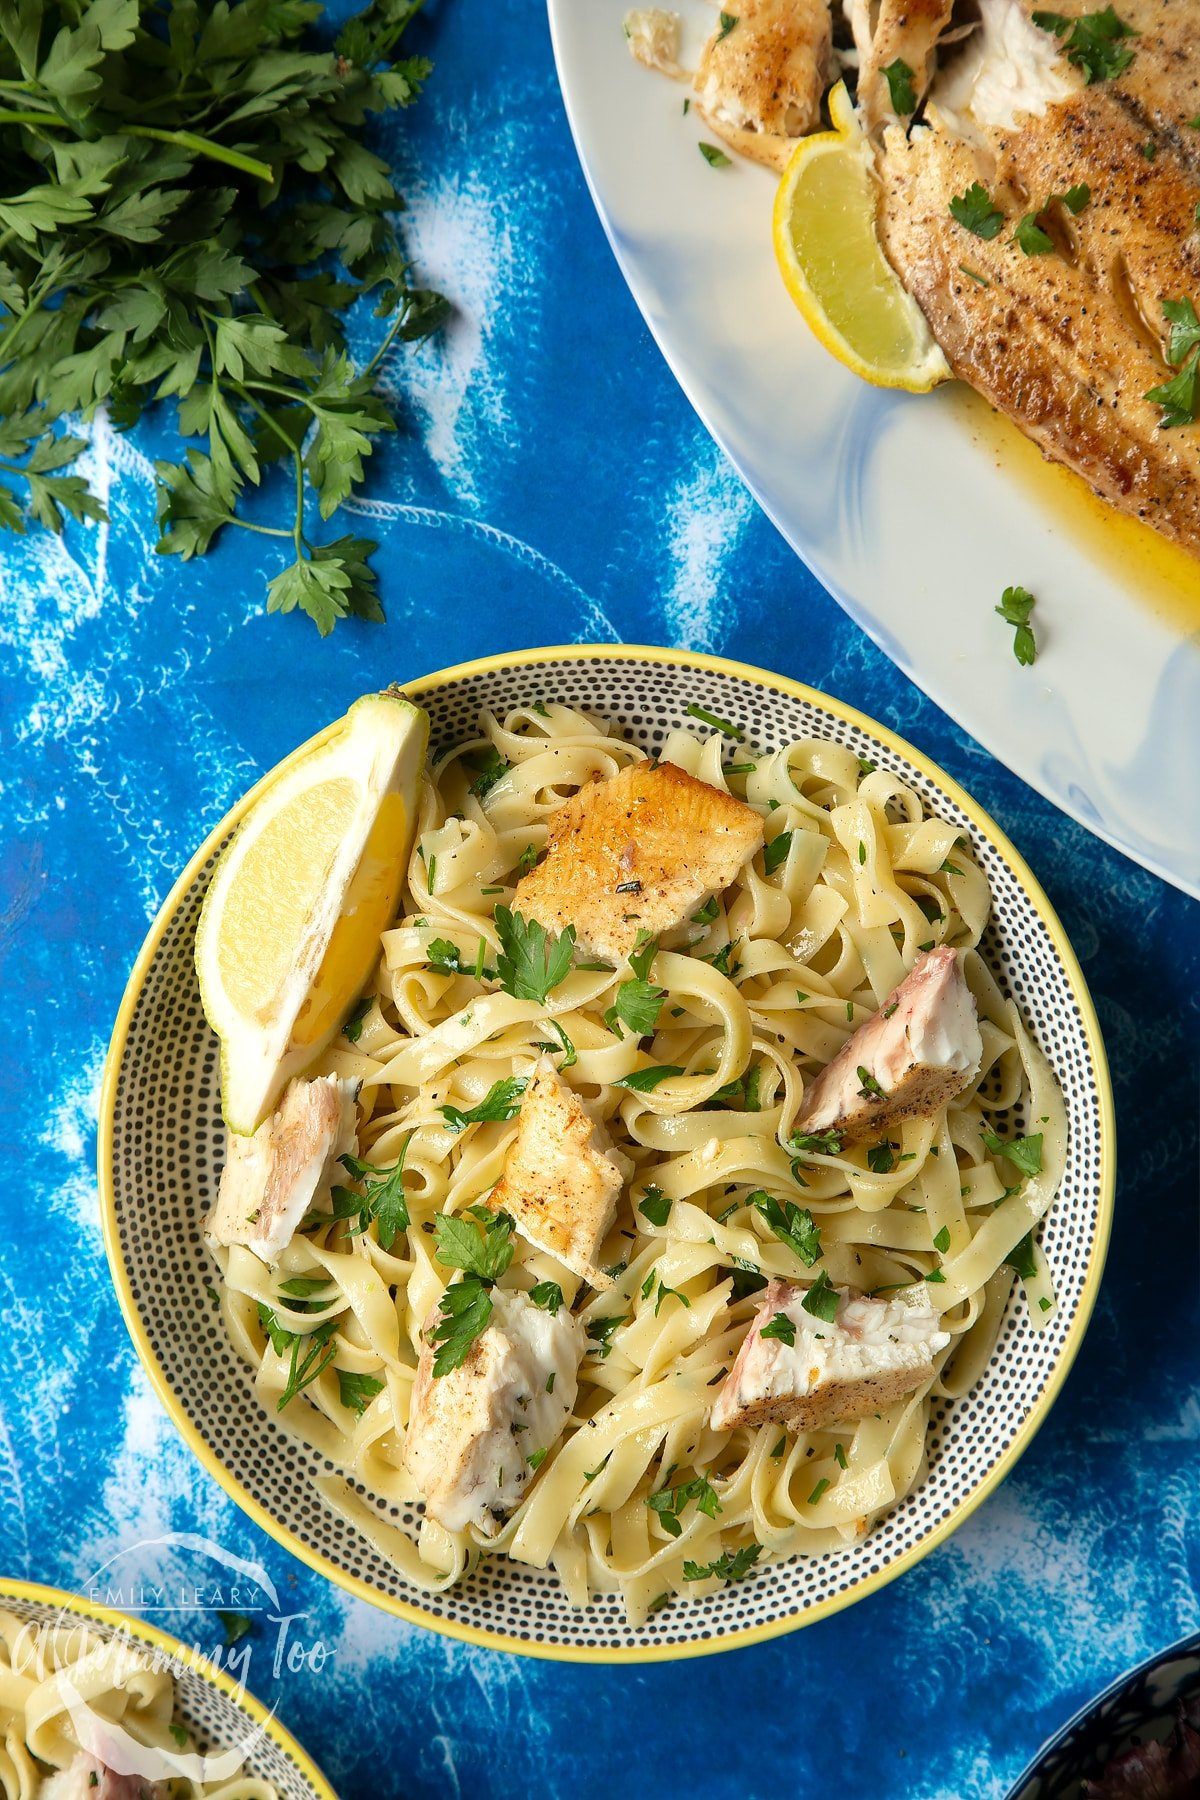 Pan-fried Yellowtail tagliatelle served in a wide, shallow bowl.